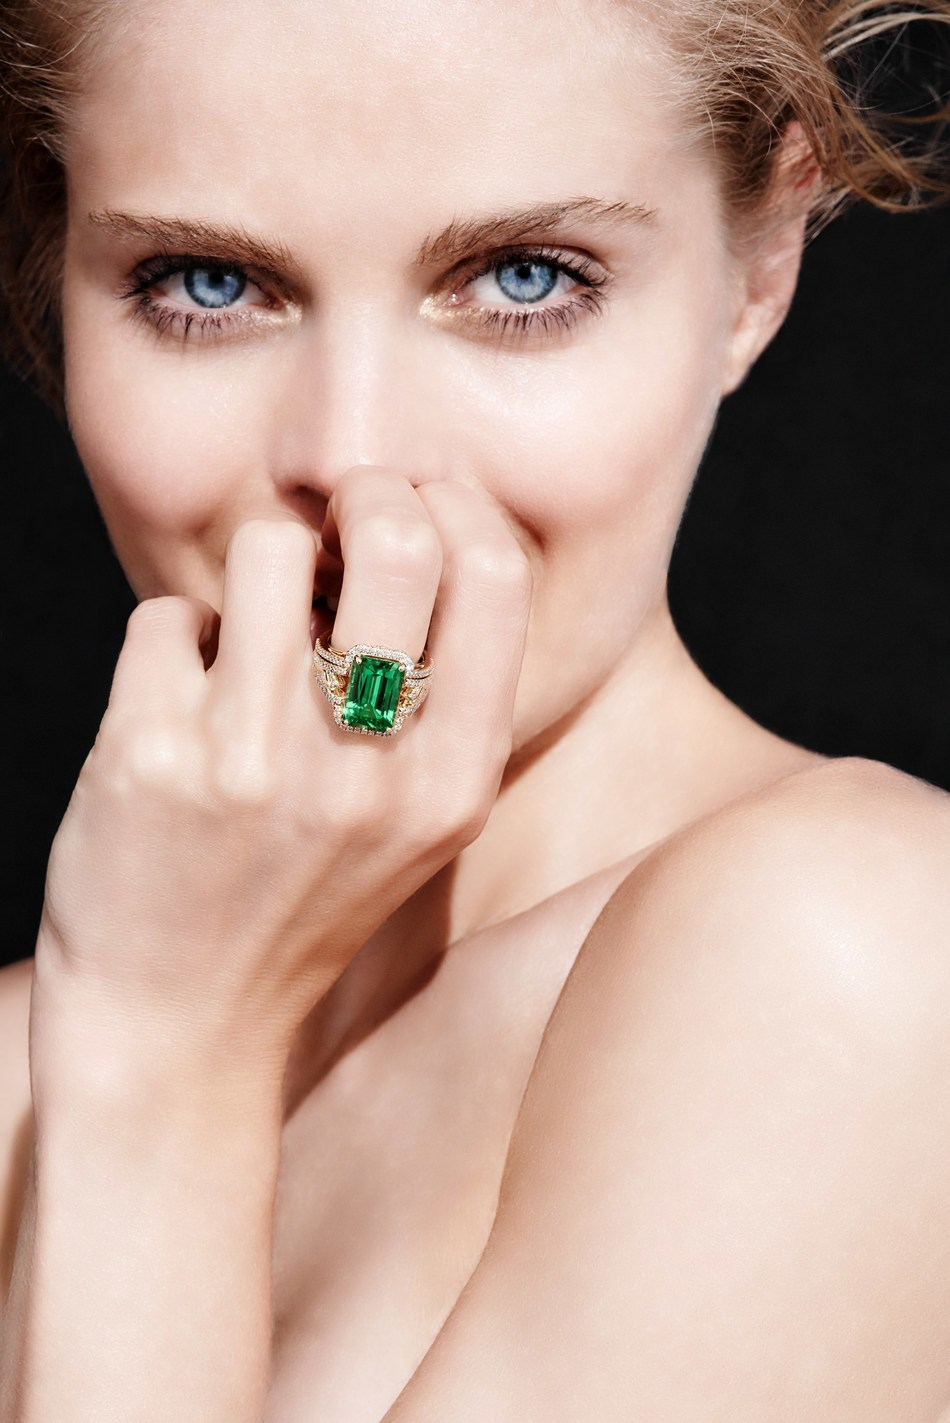 "Internationally acclaimed jewelry designer Kat Florence launches rare collection of Muzo Emeralds to collectors. Increased demand in ""legacy gemstones from world's most renowned Emerald mine."" The Kat Florence Muzo Emerald collection will be released the week of May 25 on her website www.katflorence.com."